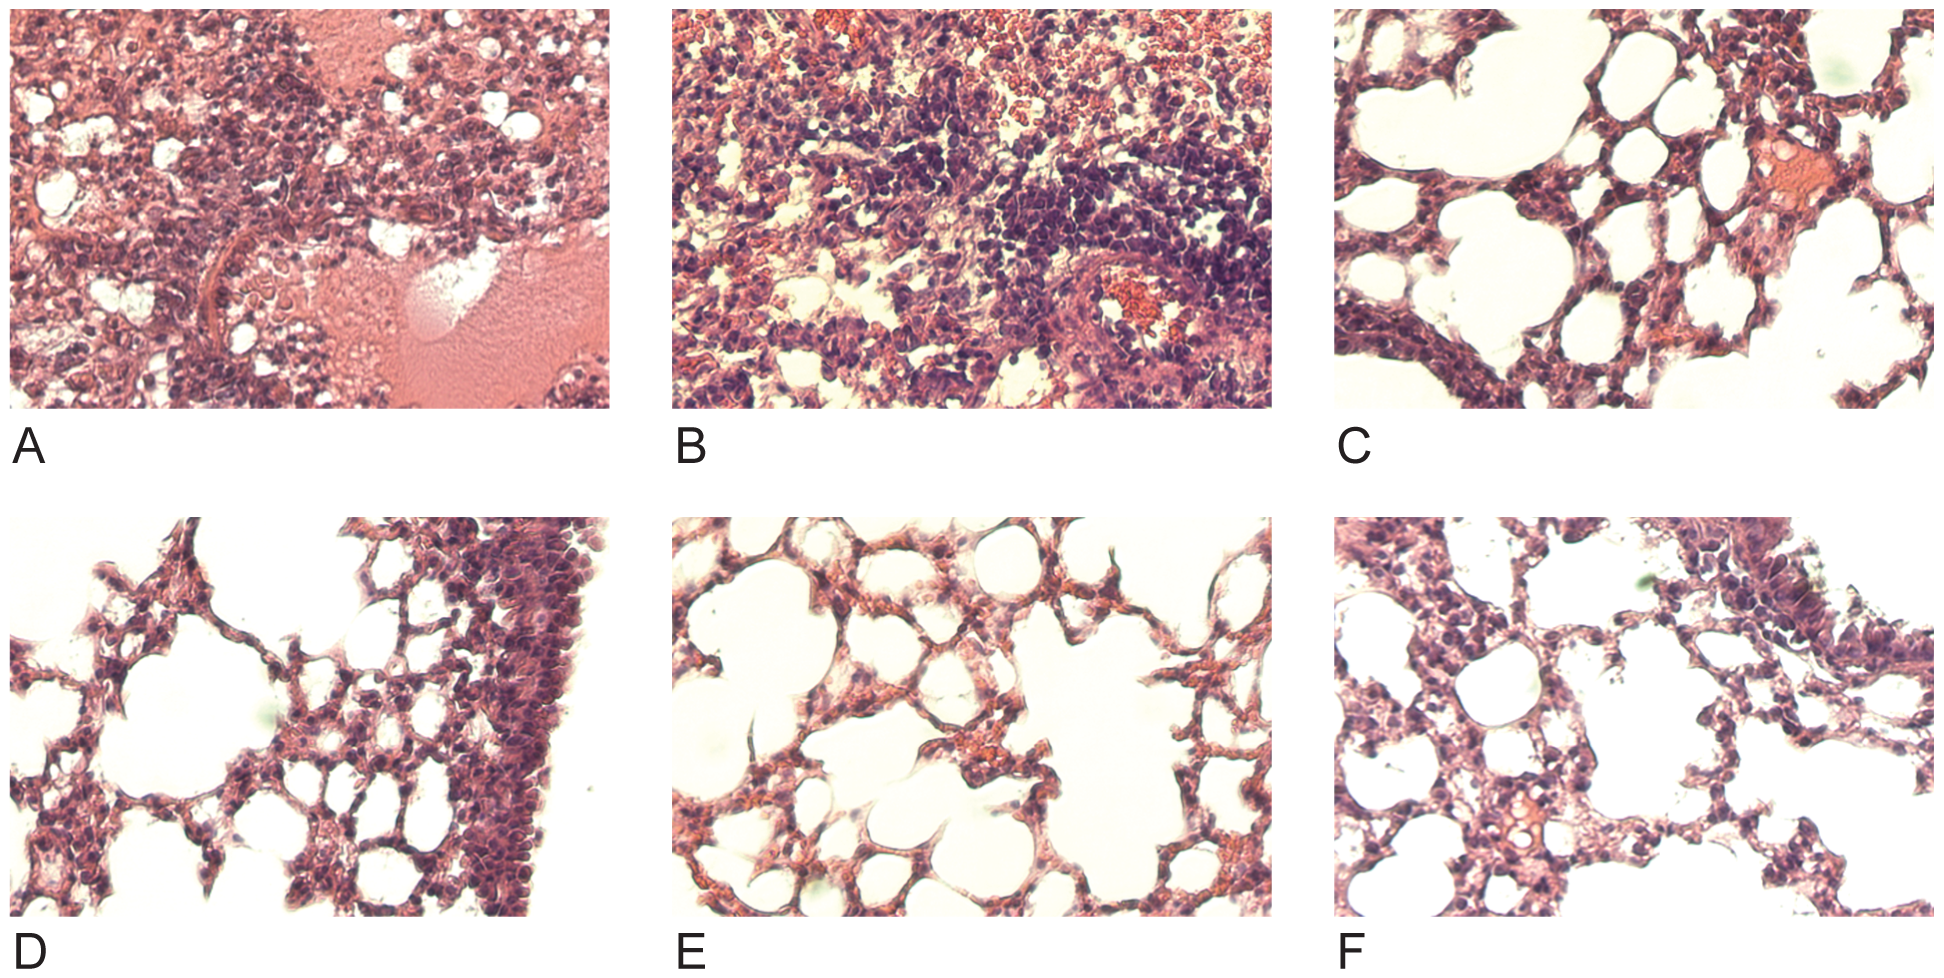 Treatment with anti-H3 mAbs diminishes lung damage associated with viral pneumonia caused by HK68/PR8 reassortant virus.